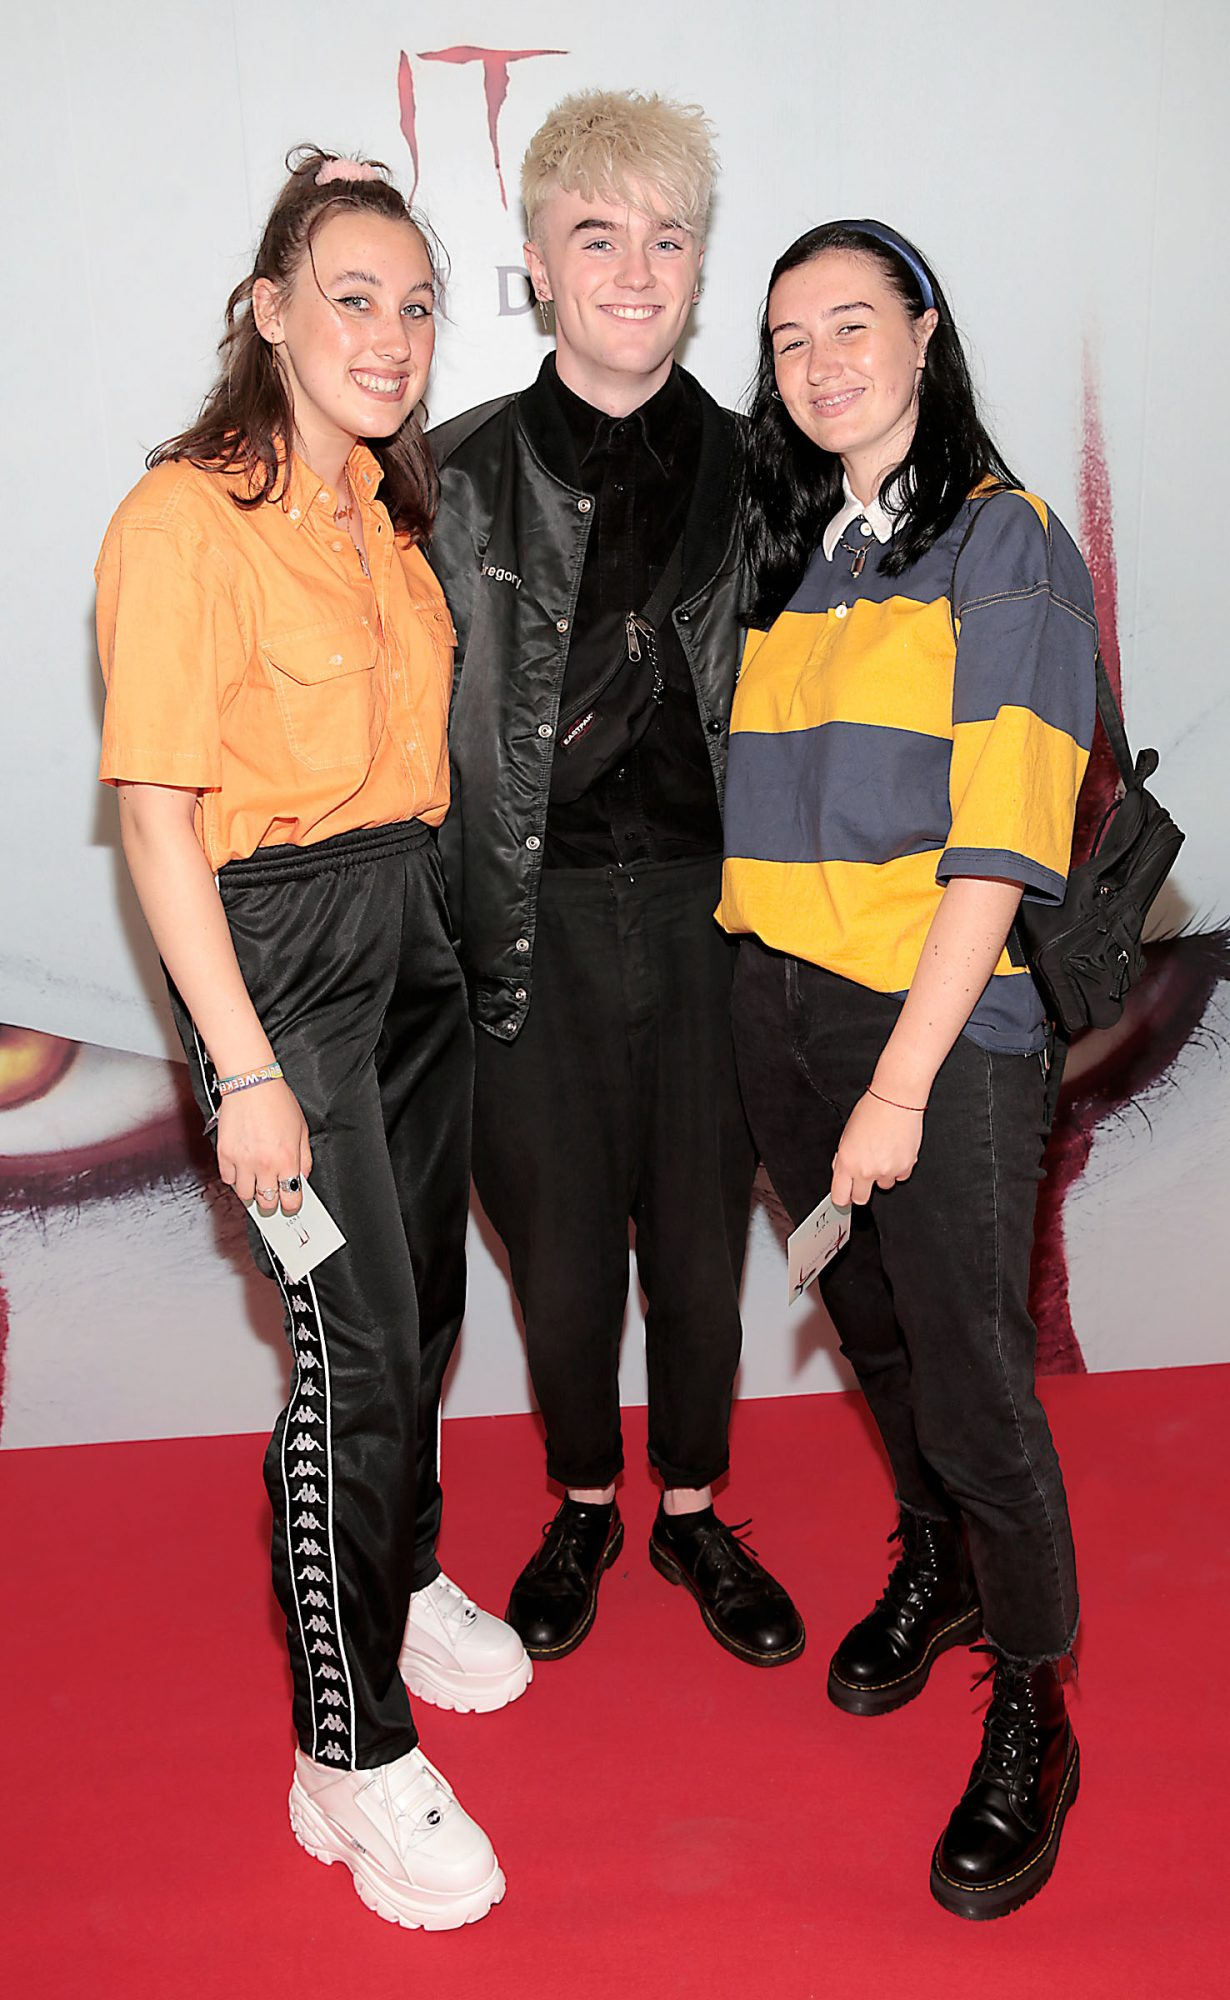 Katelyn Markham, Thomas Moore and Madison Cawley at the Irish premiere of IT Chapter 2 at the Odeon Cinema in Point Square, Dublin. Pic: Brian McEvoy.